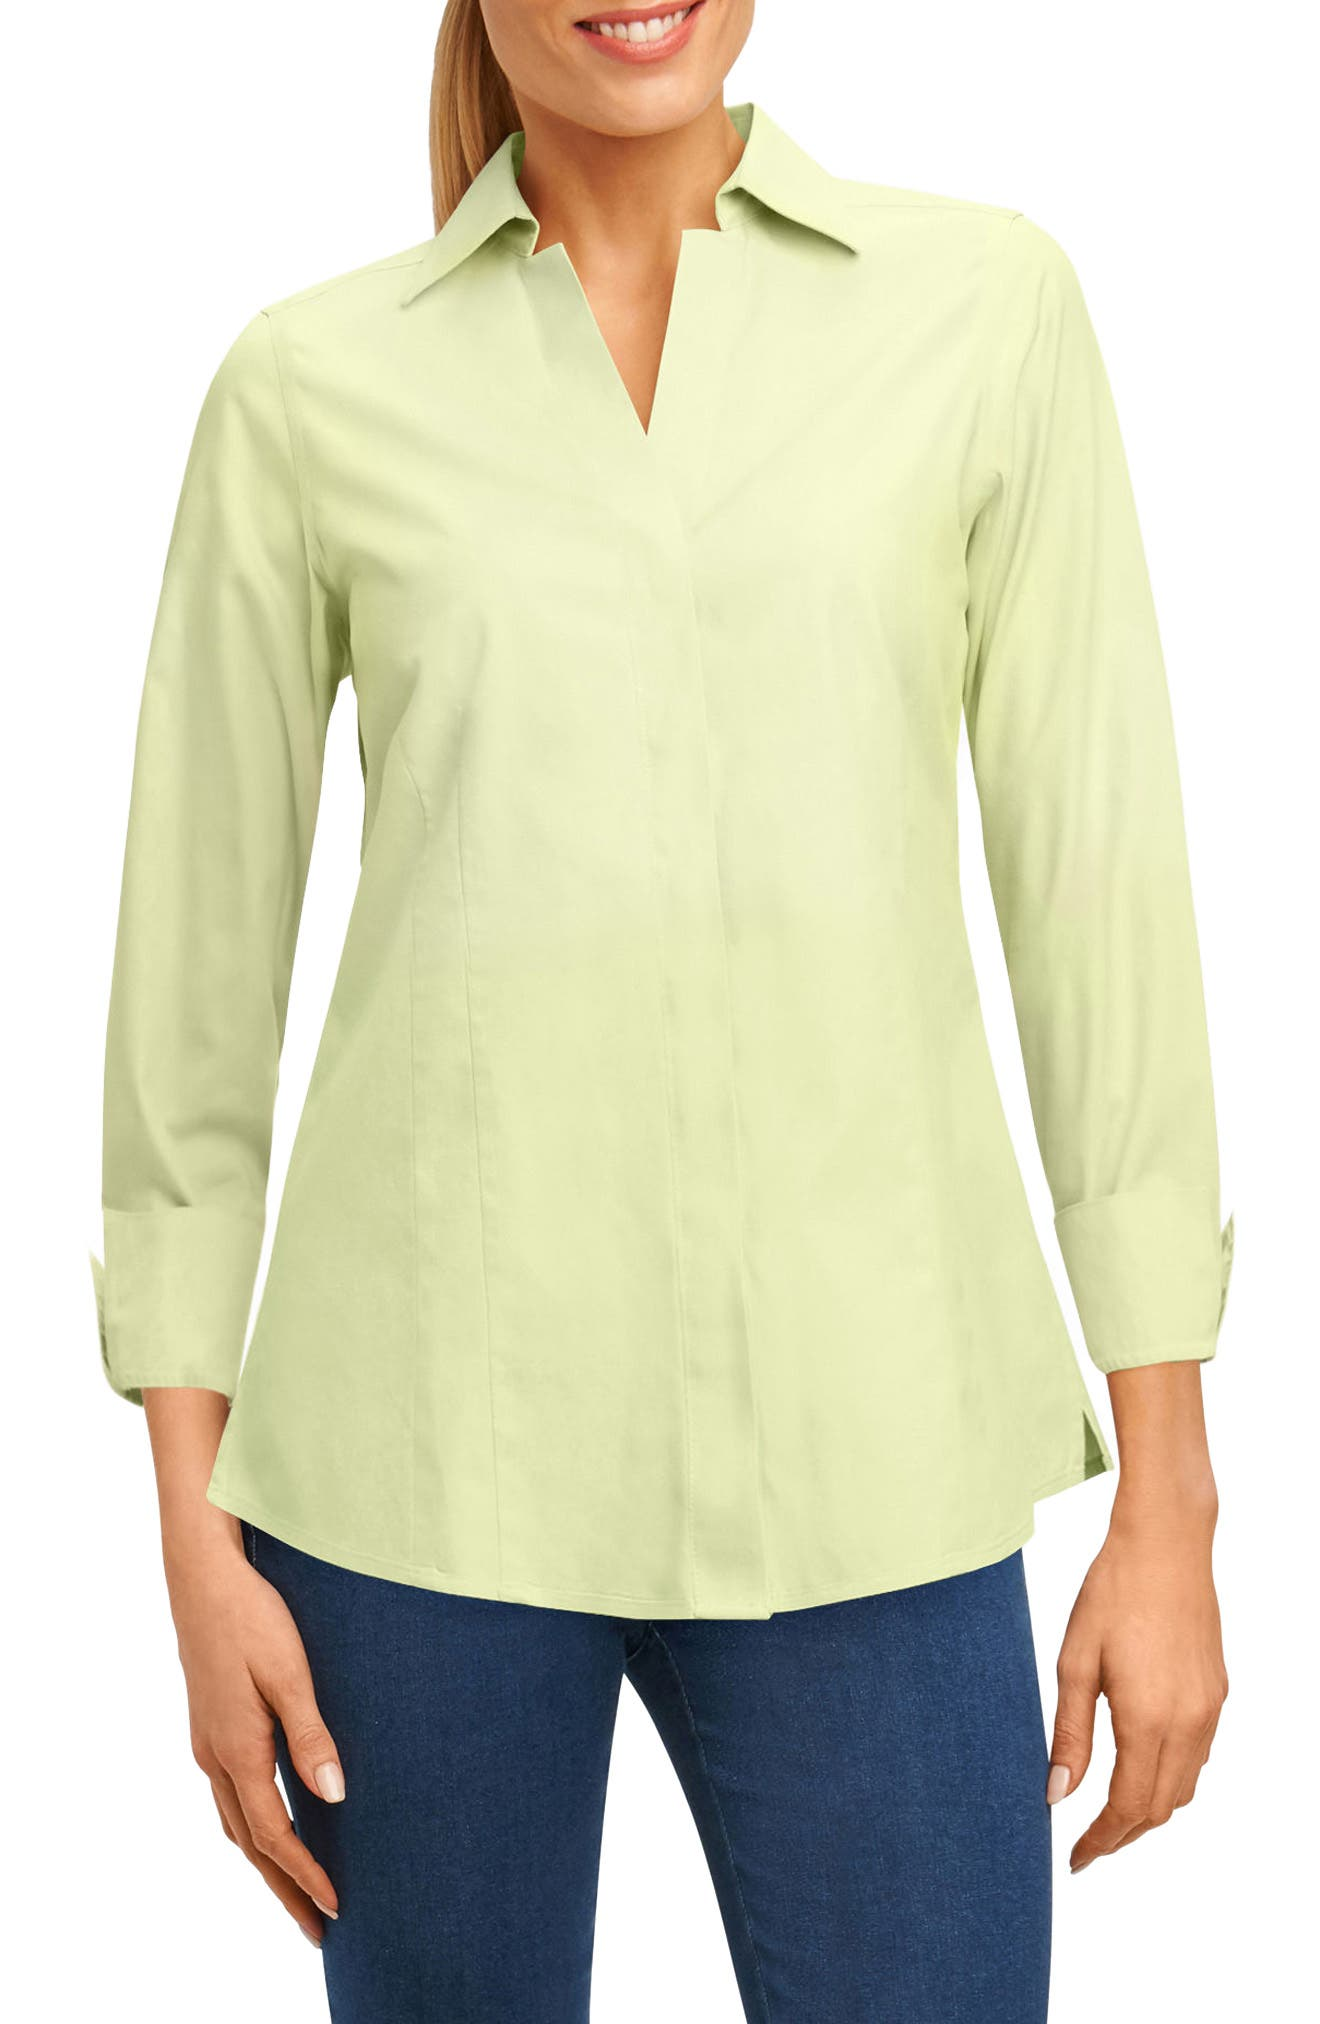 Alternate Image 1 Selected - Foxcroft Fitted Non-Iron Shirt (Regular & Petite)